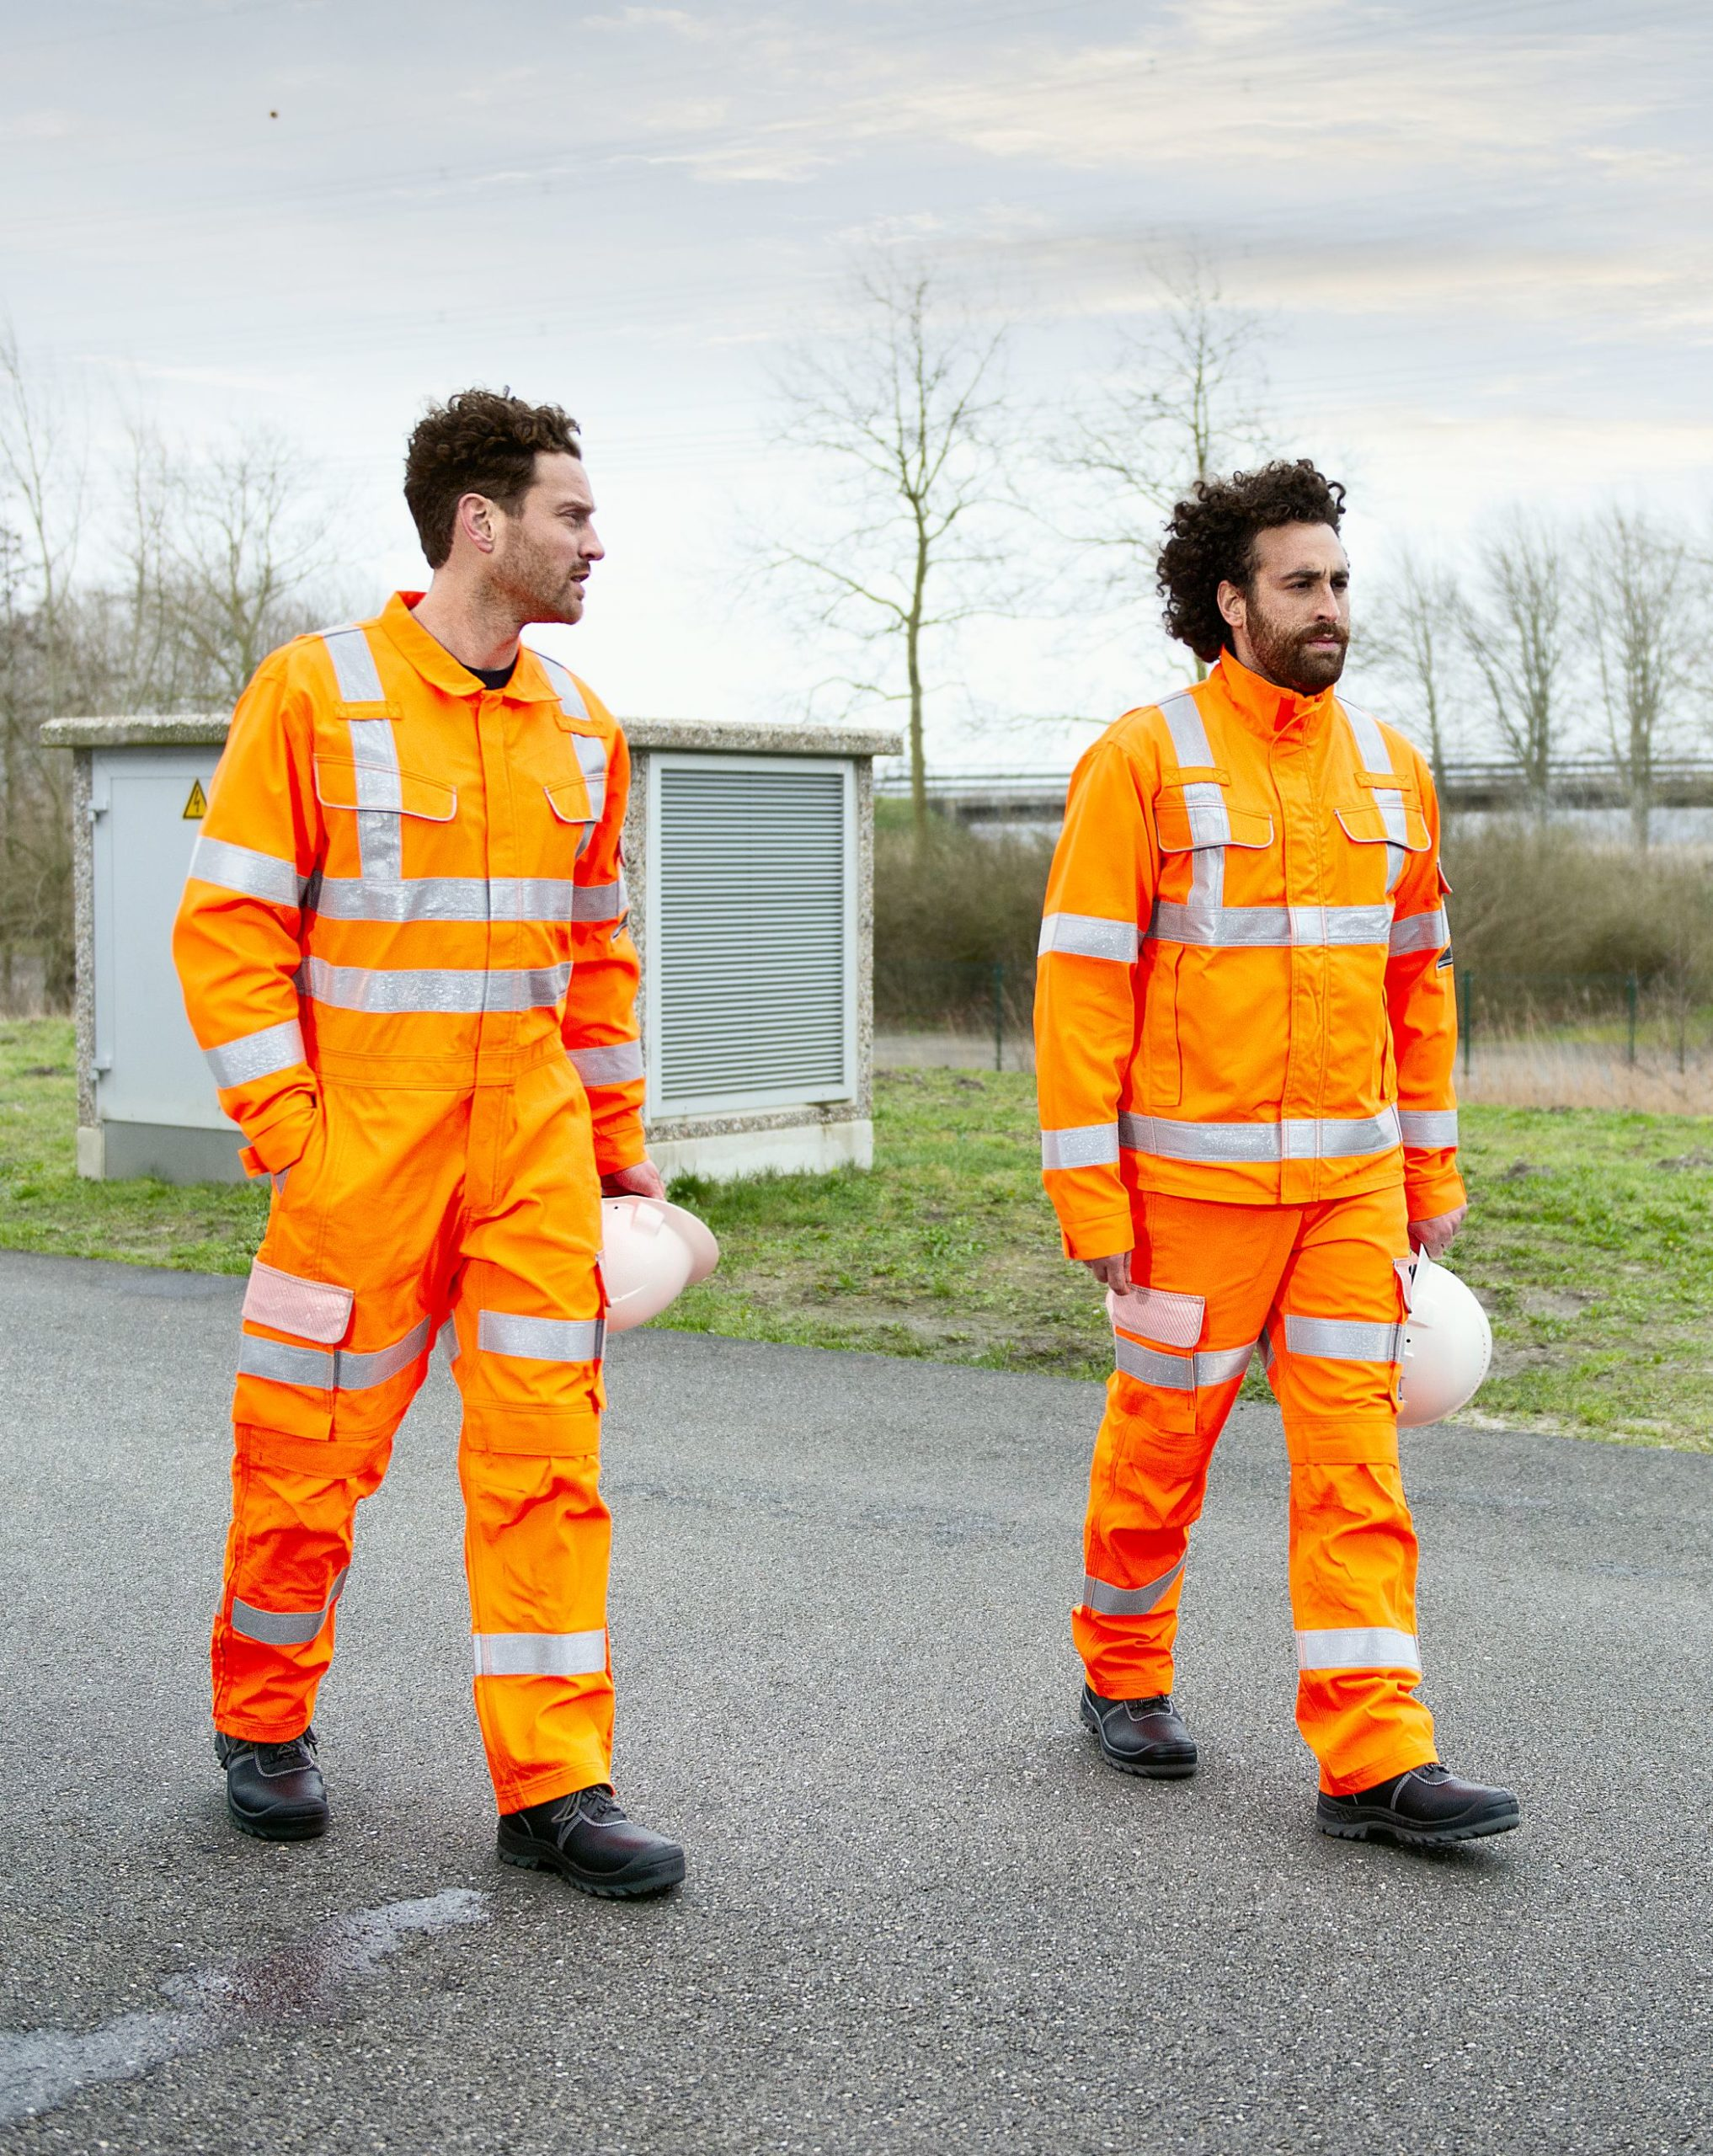 Ballyclare's new ProTec range brings higher standards of protection to the workwear market